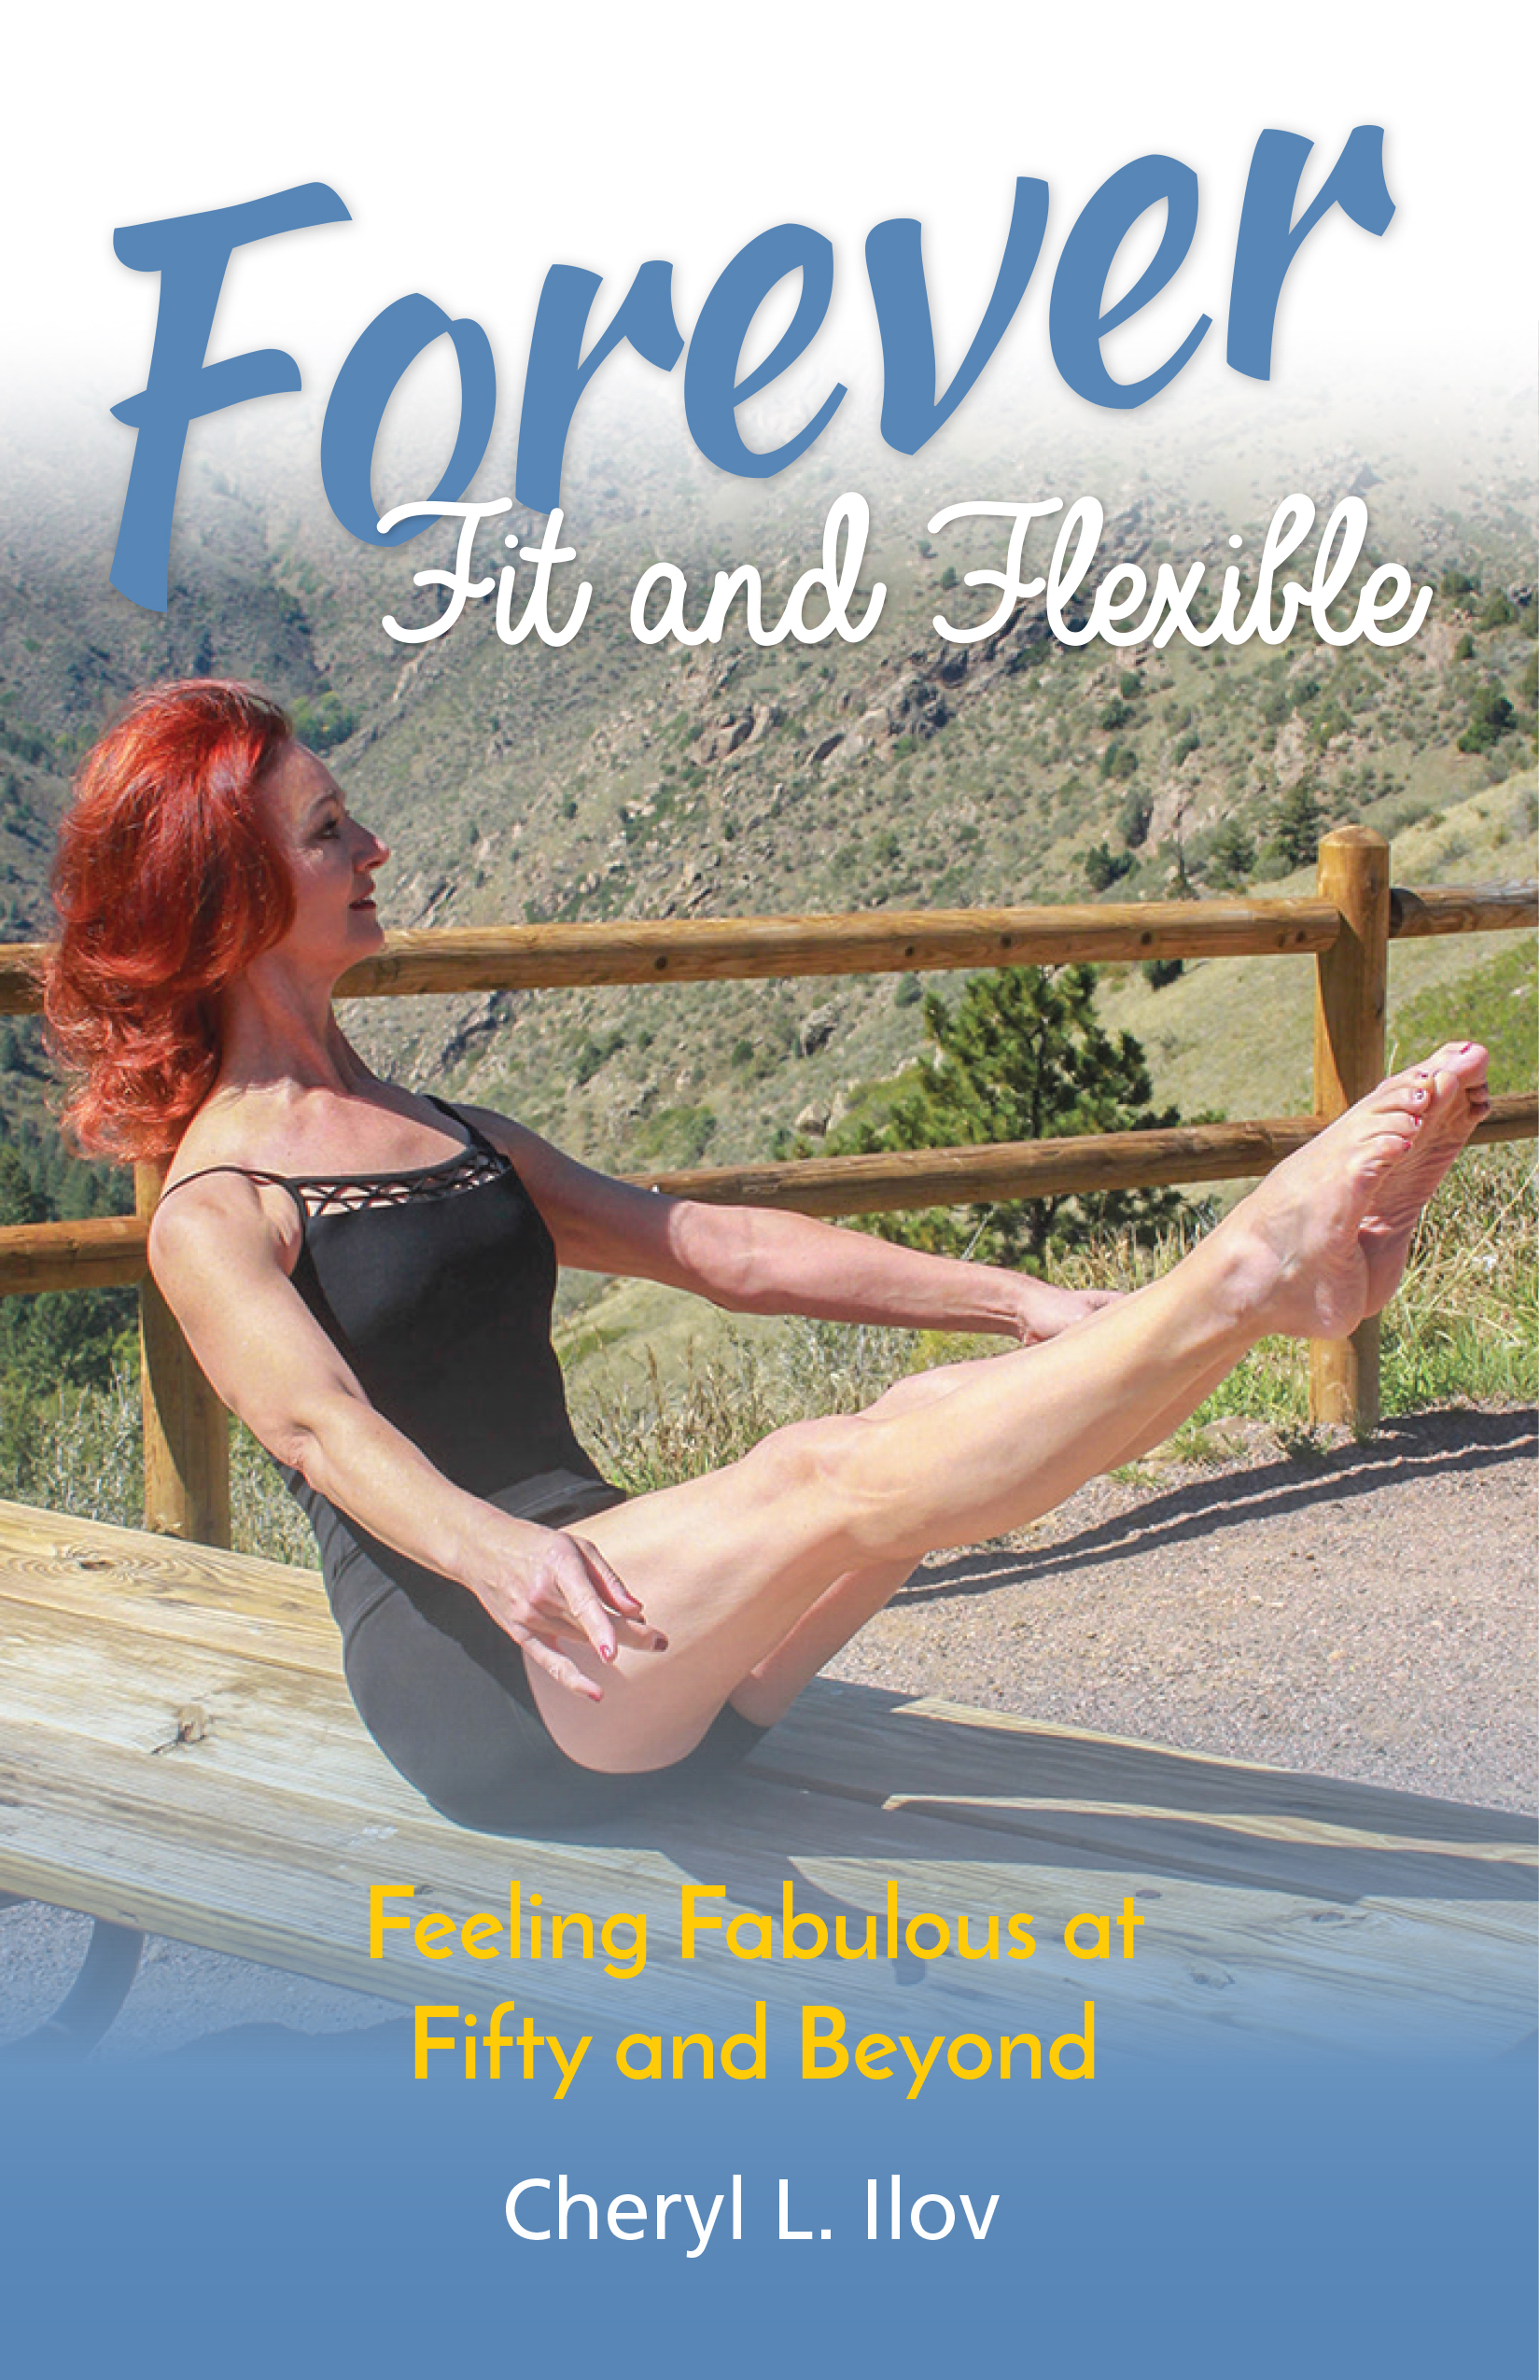 Forever Fit and Flexible by Cheryl L. Llov